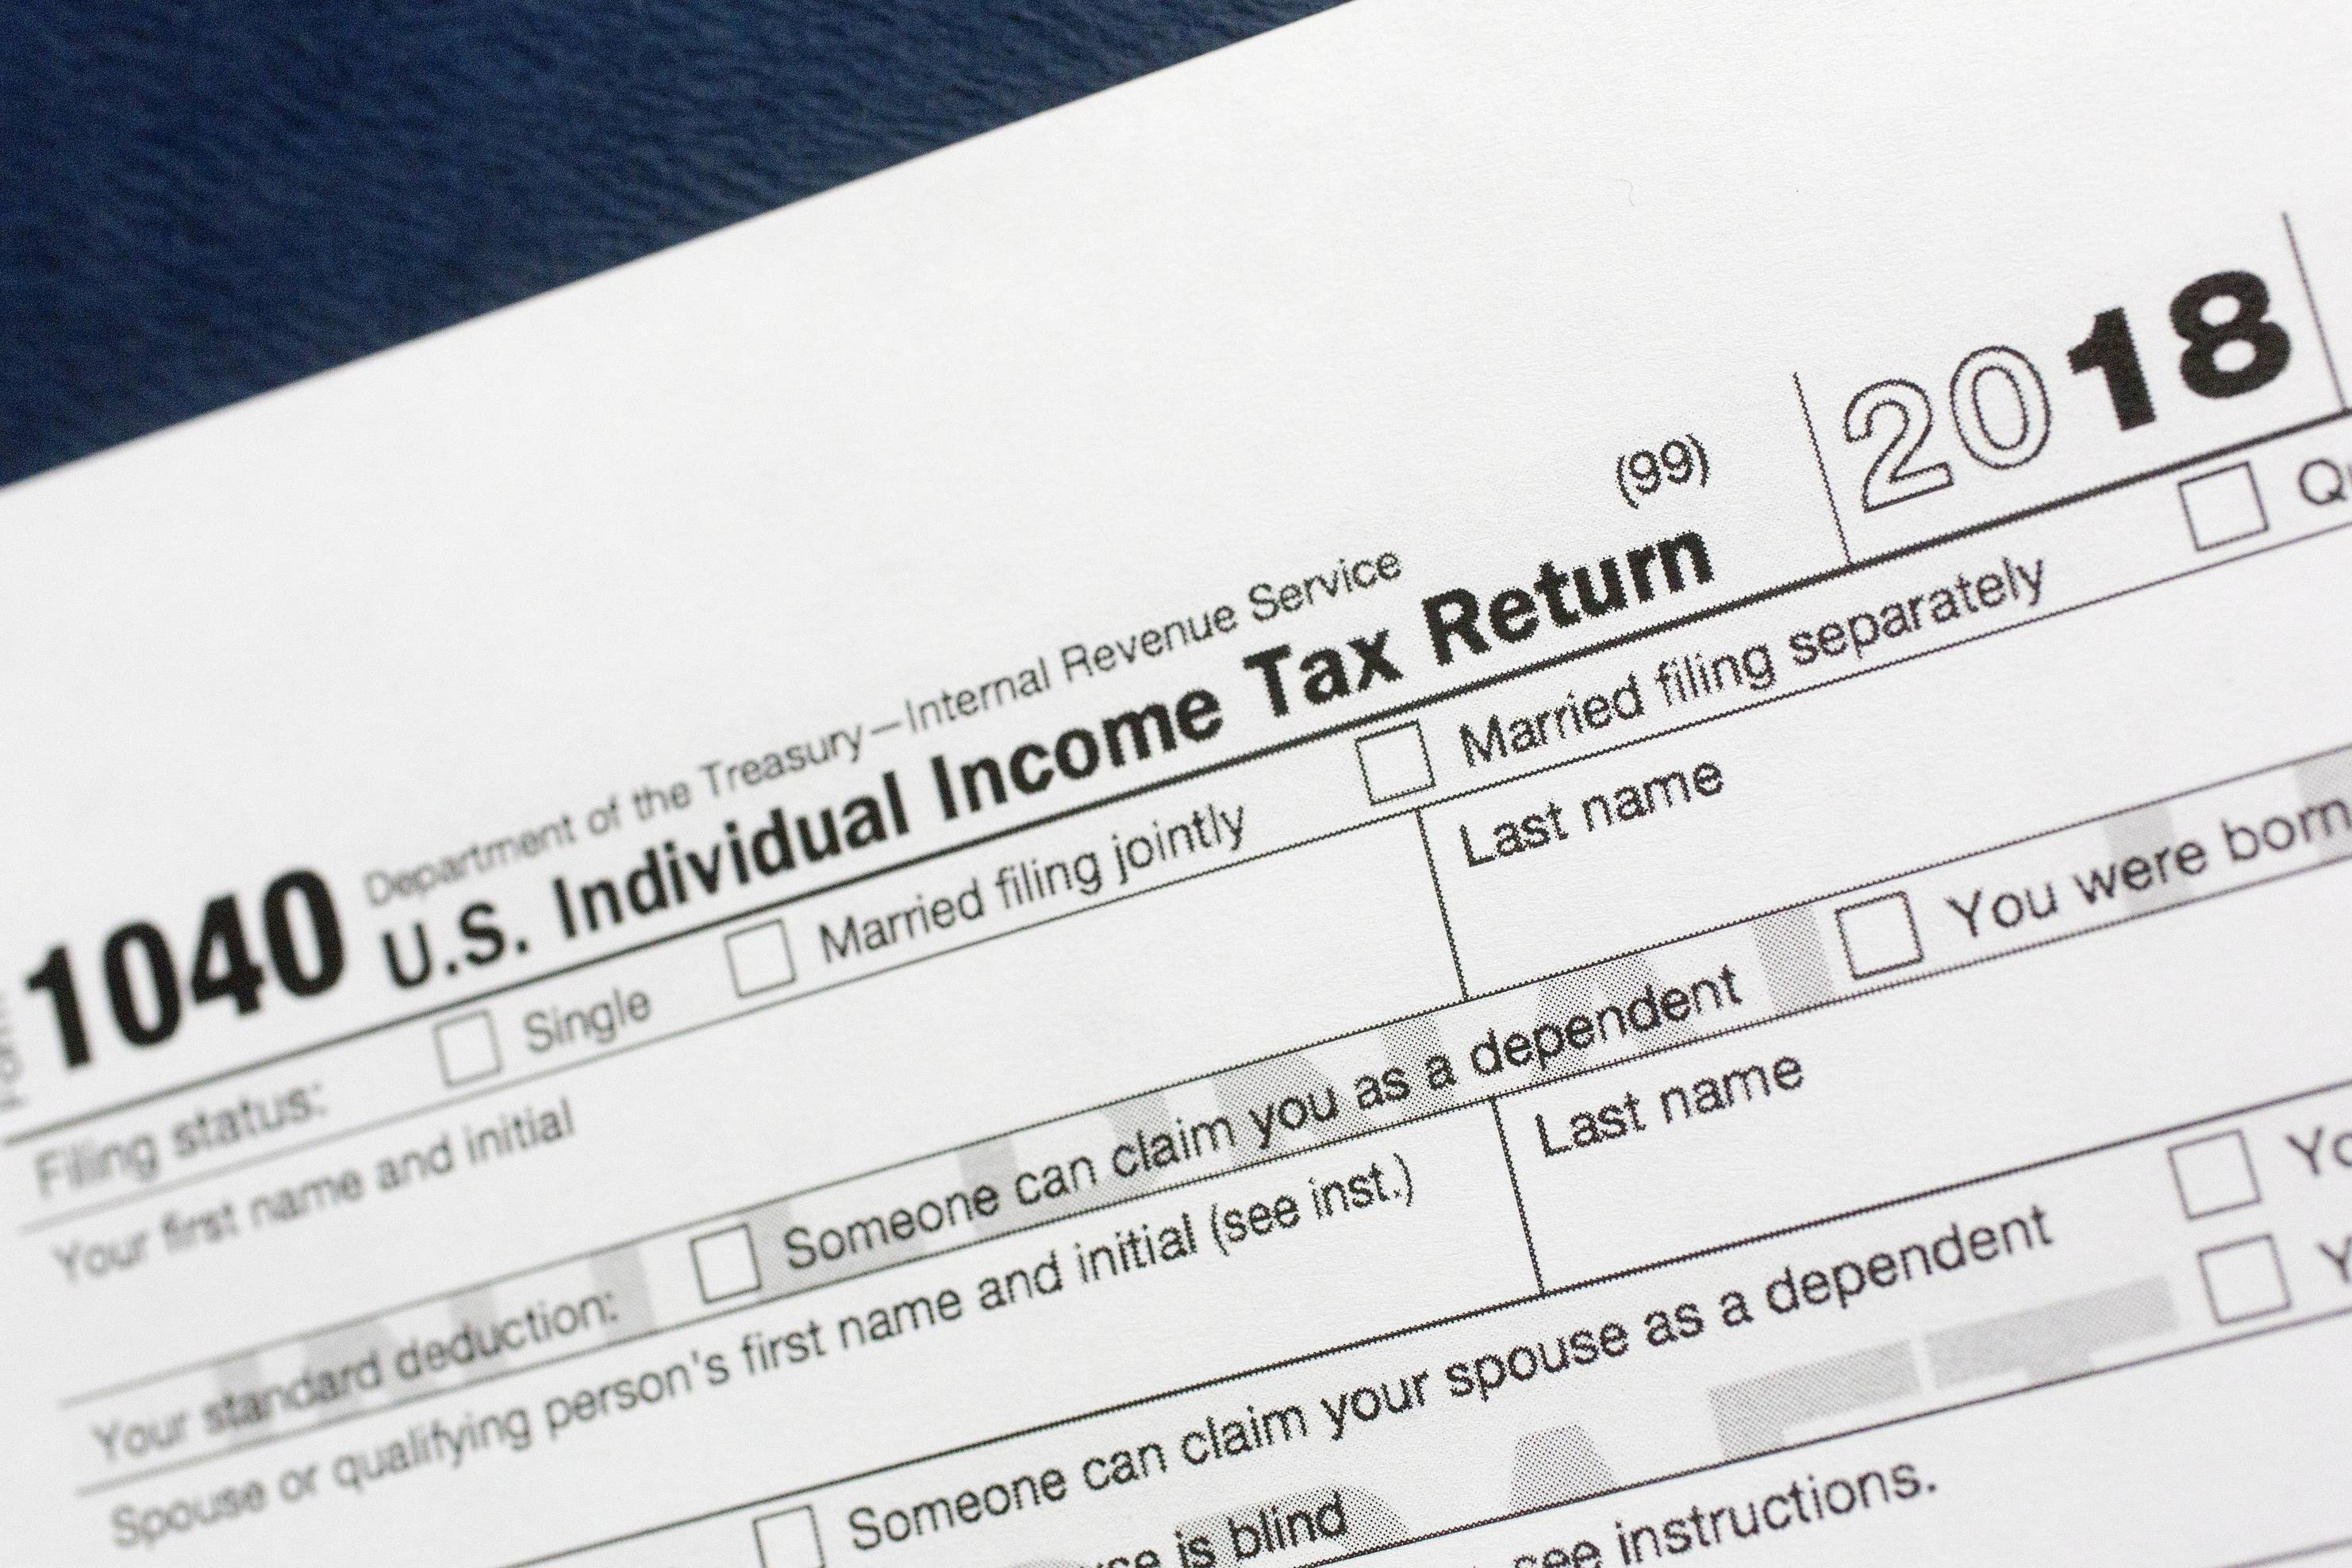 If you've lost or never received your W-2, old tax returns, 1099s or 1098s to complete your tax return, there are a few things you can do to get back on track and give yourself more time.